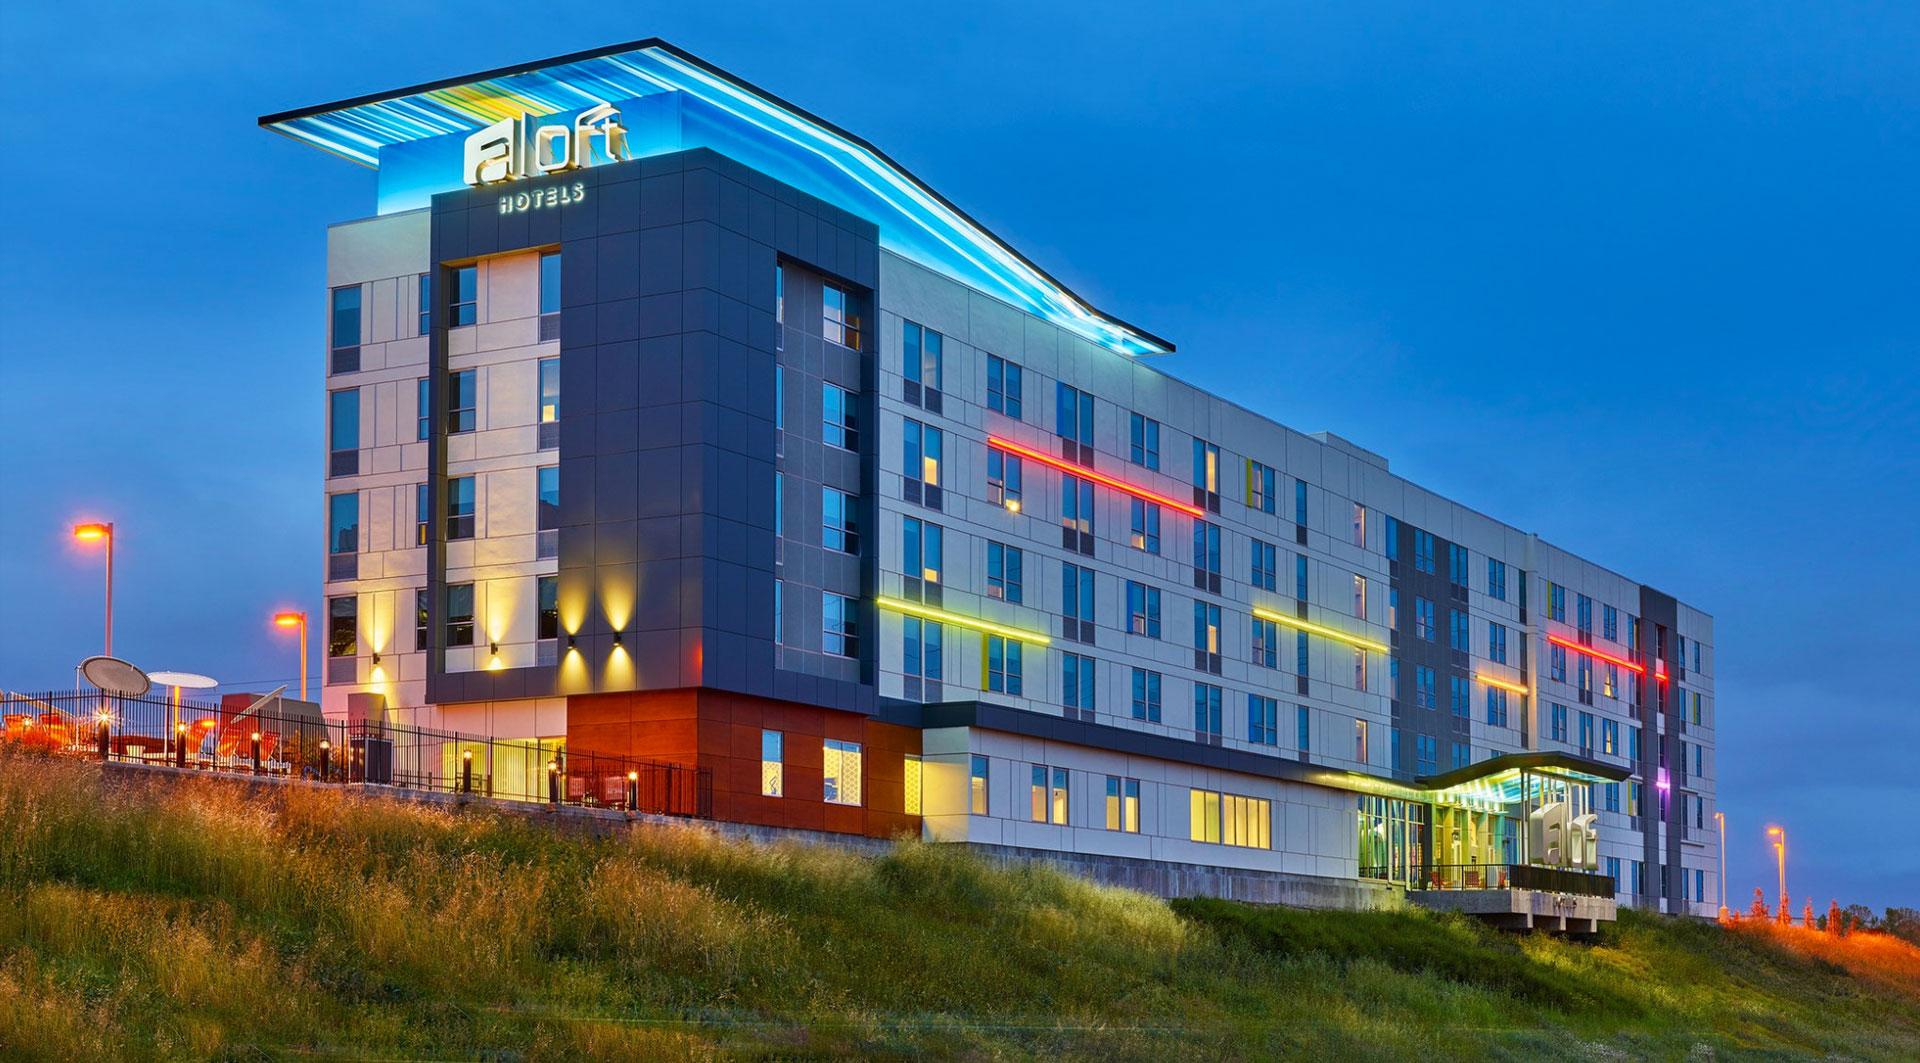 college bowl hotels